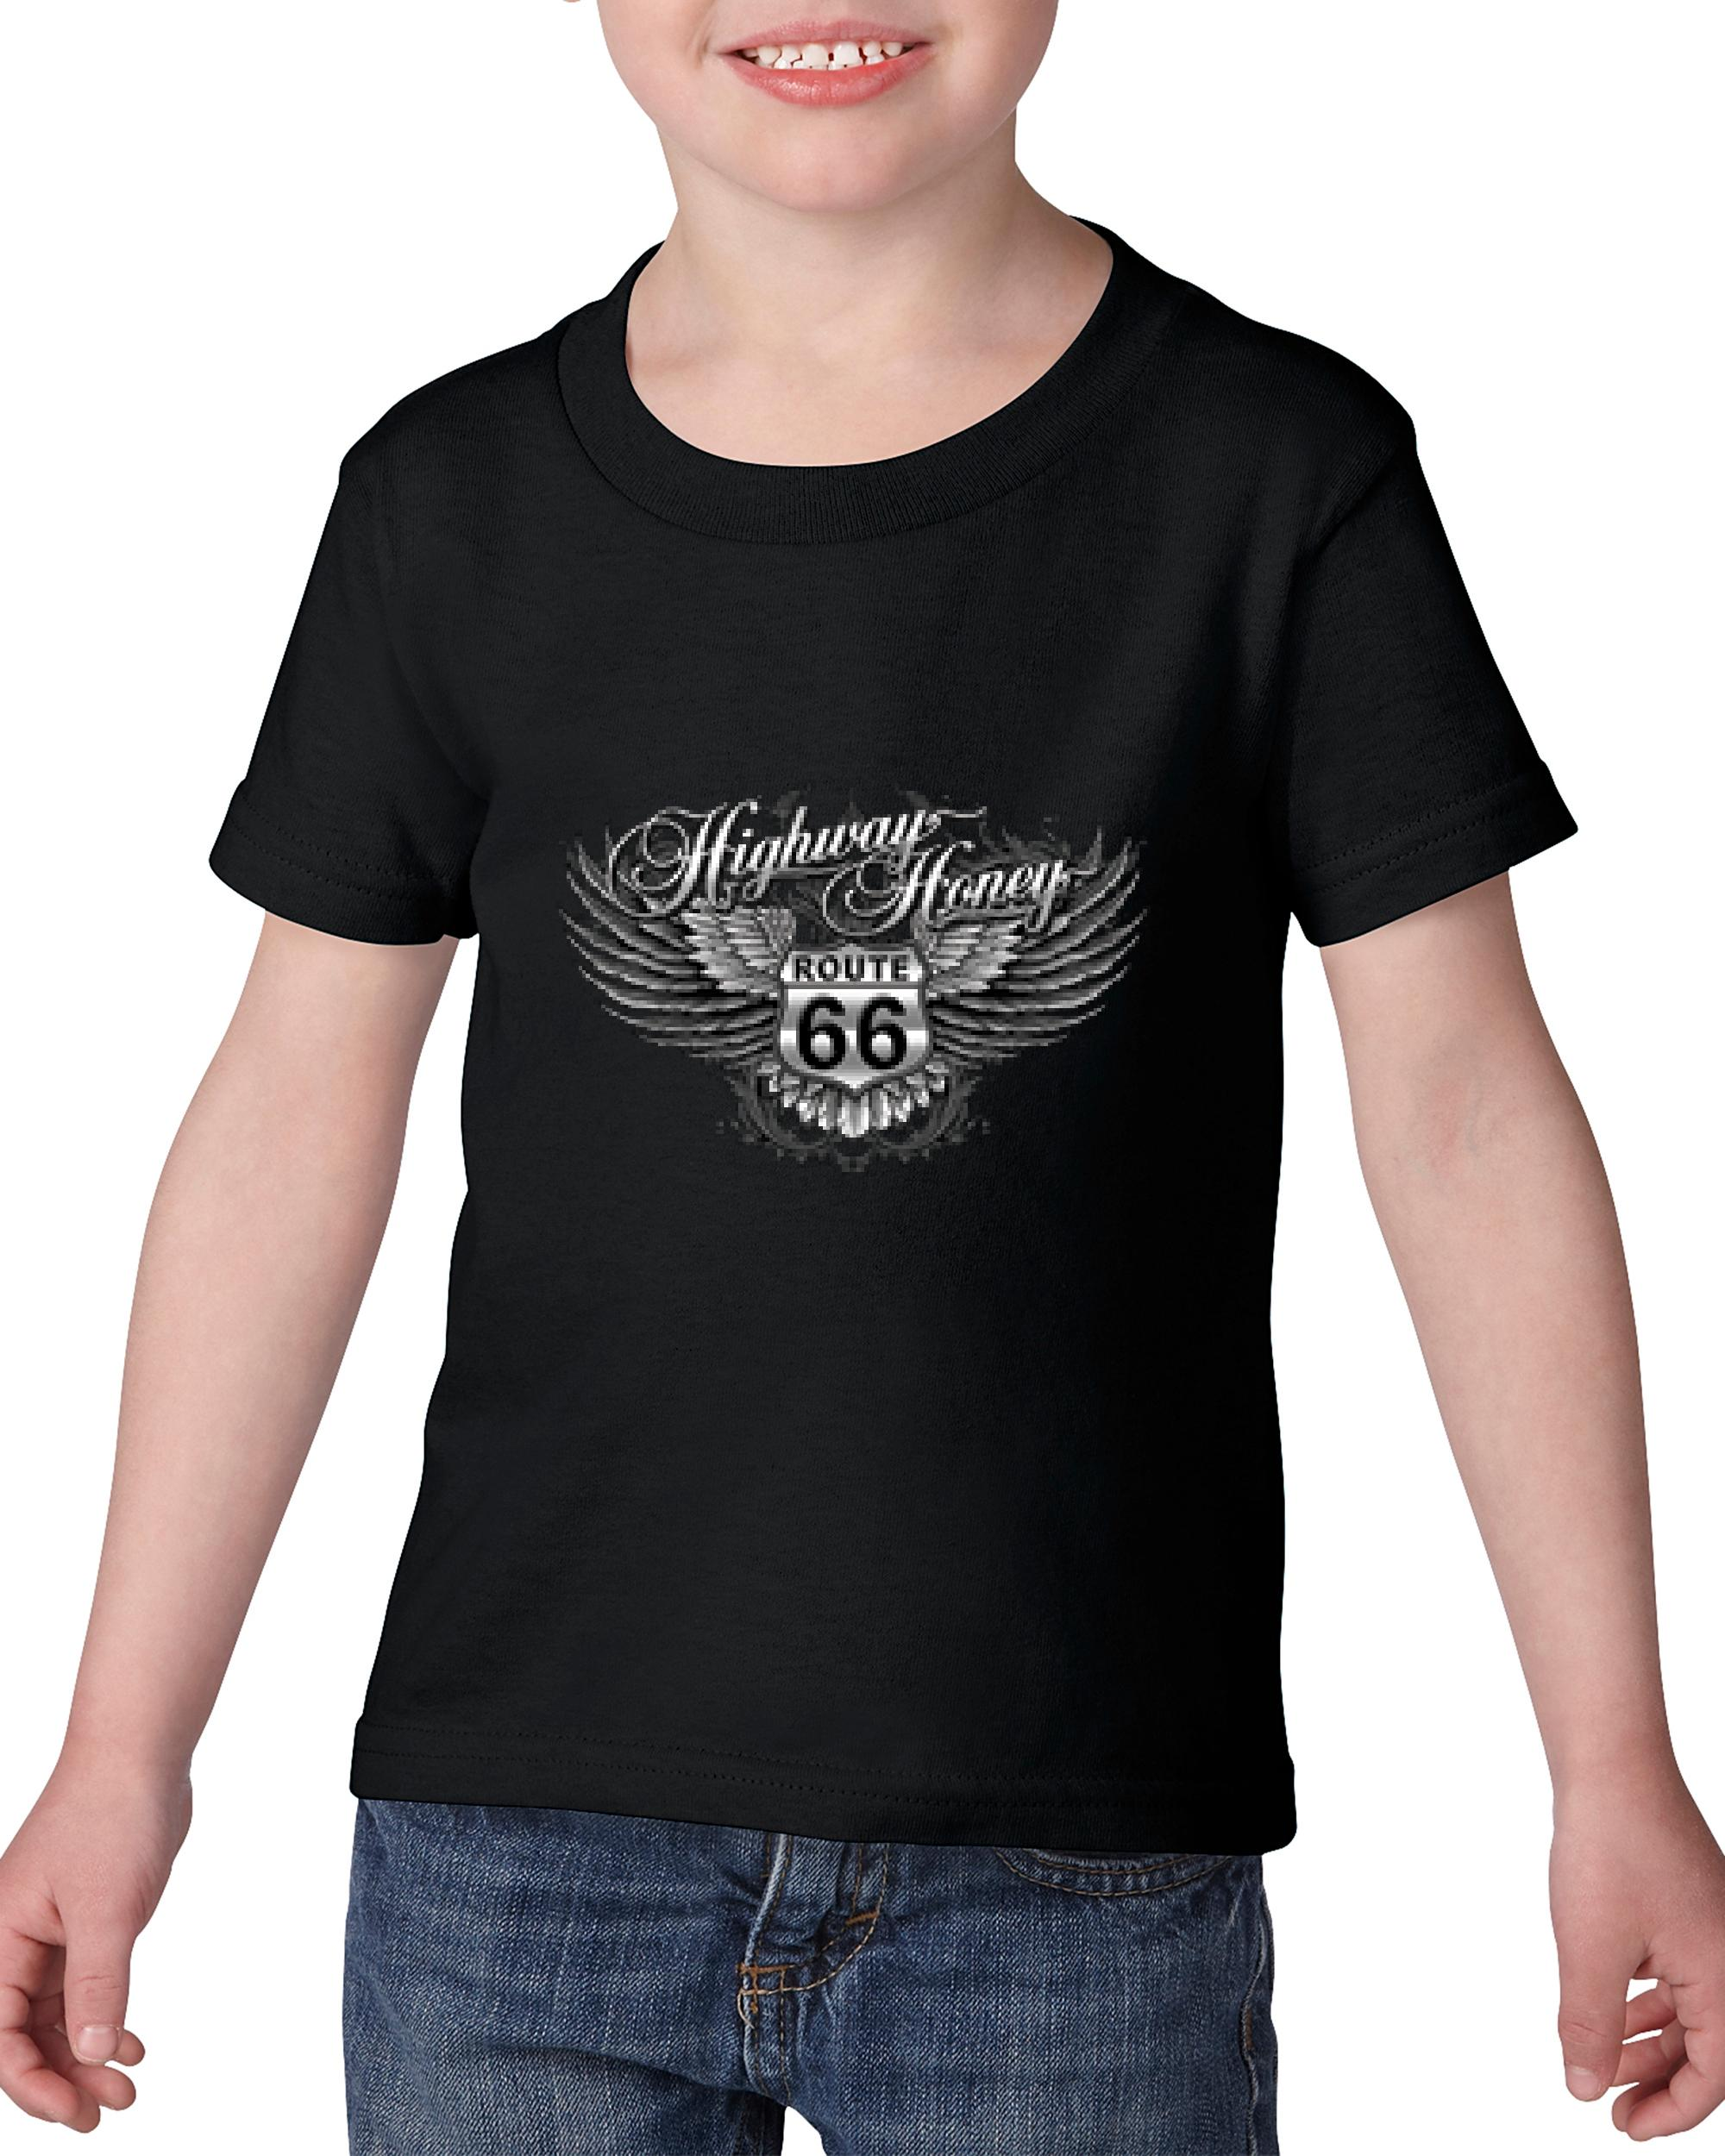 Artix Route 66 Shield With Wings Birthday Xmas Gift Match W Flags Maps Jeans Hats Bags Heavy Cotton Toddler Kids T-Shirt Tee Clothing